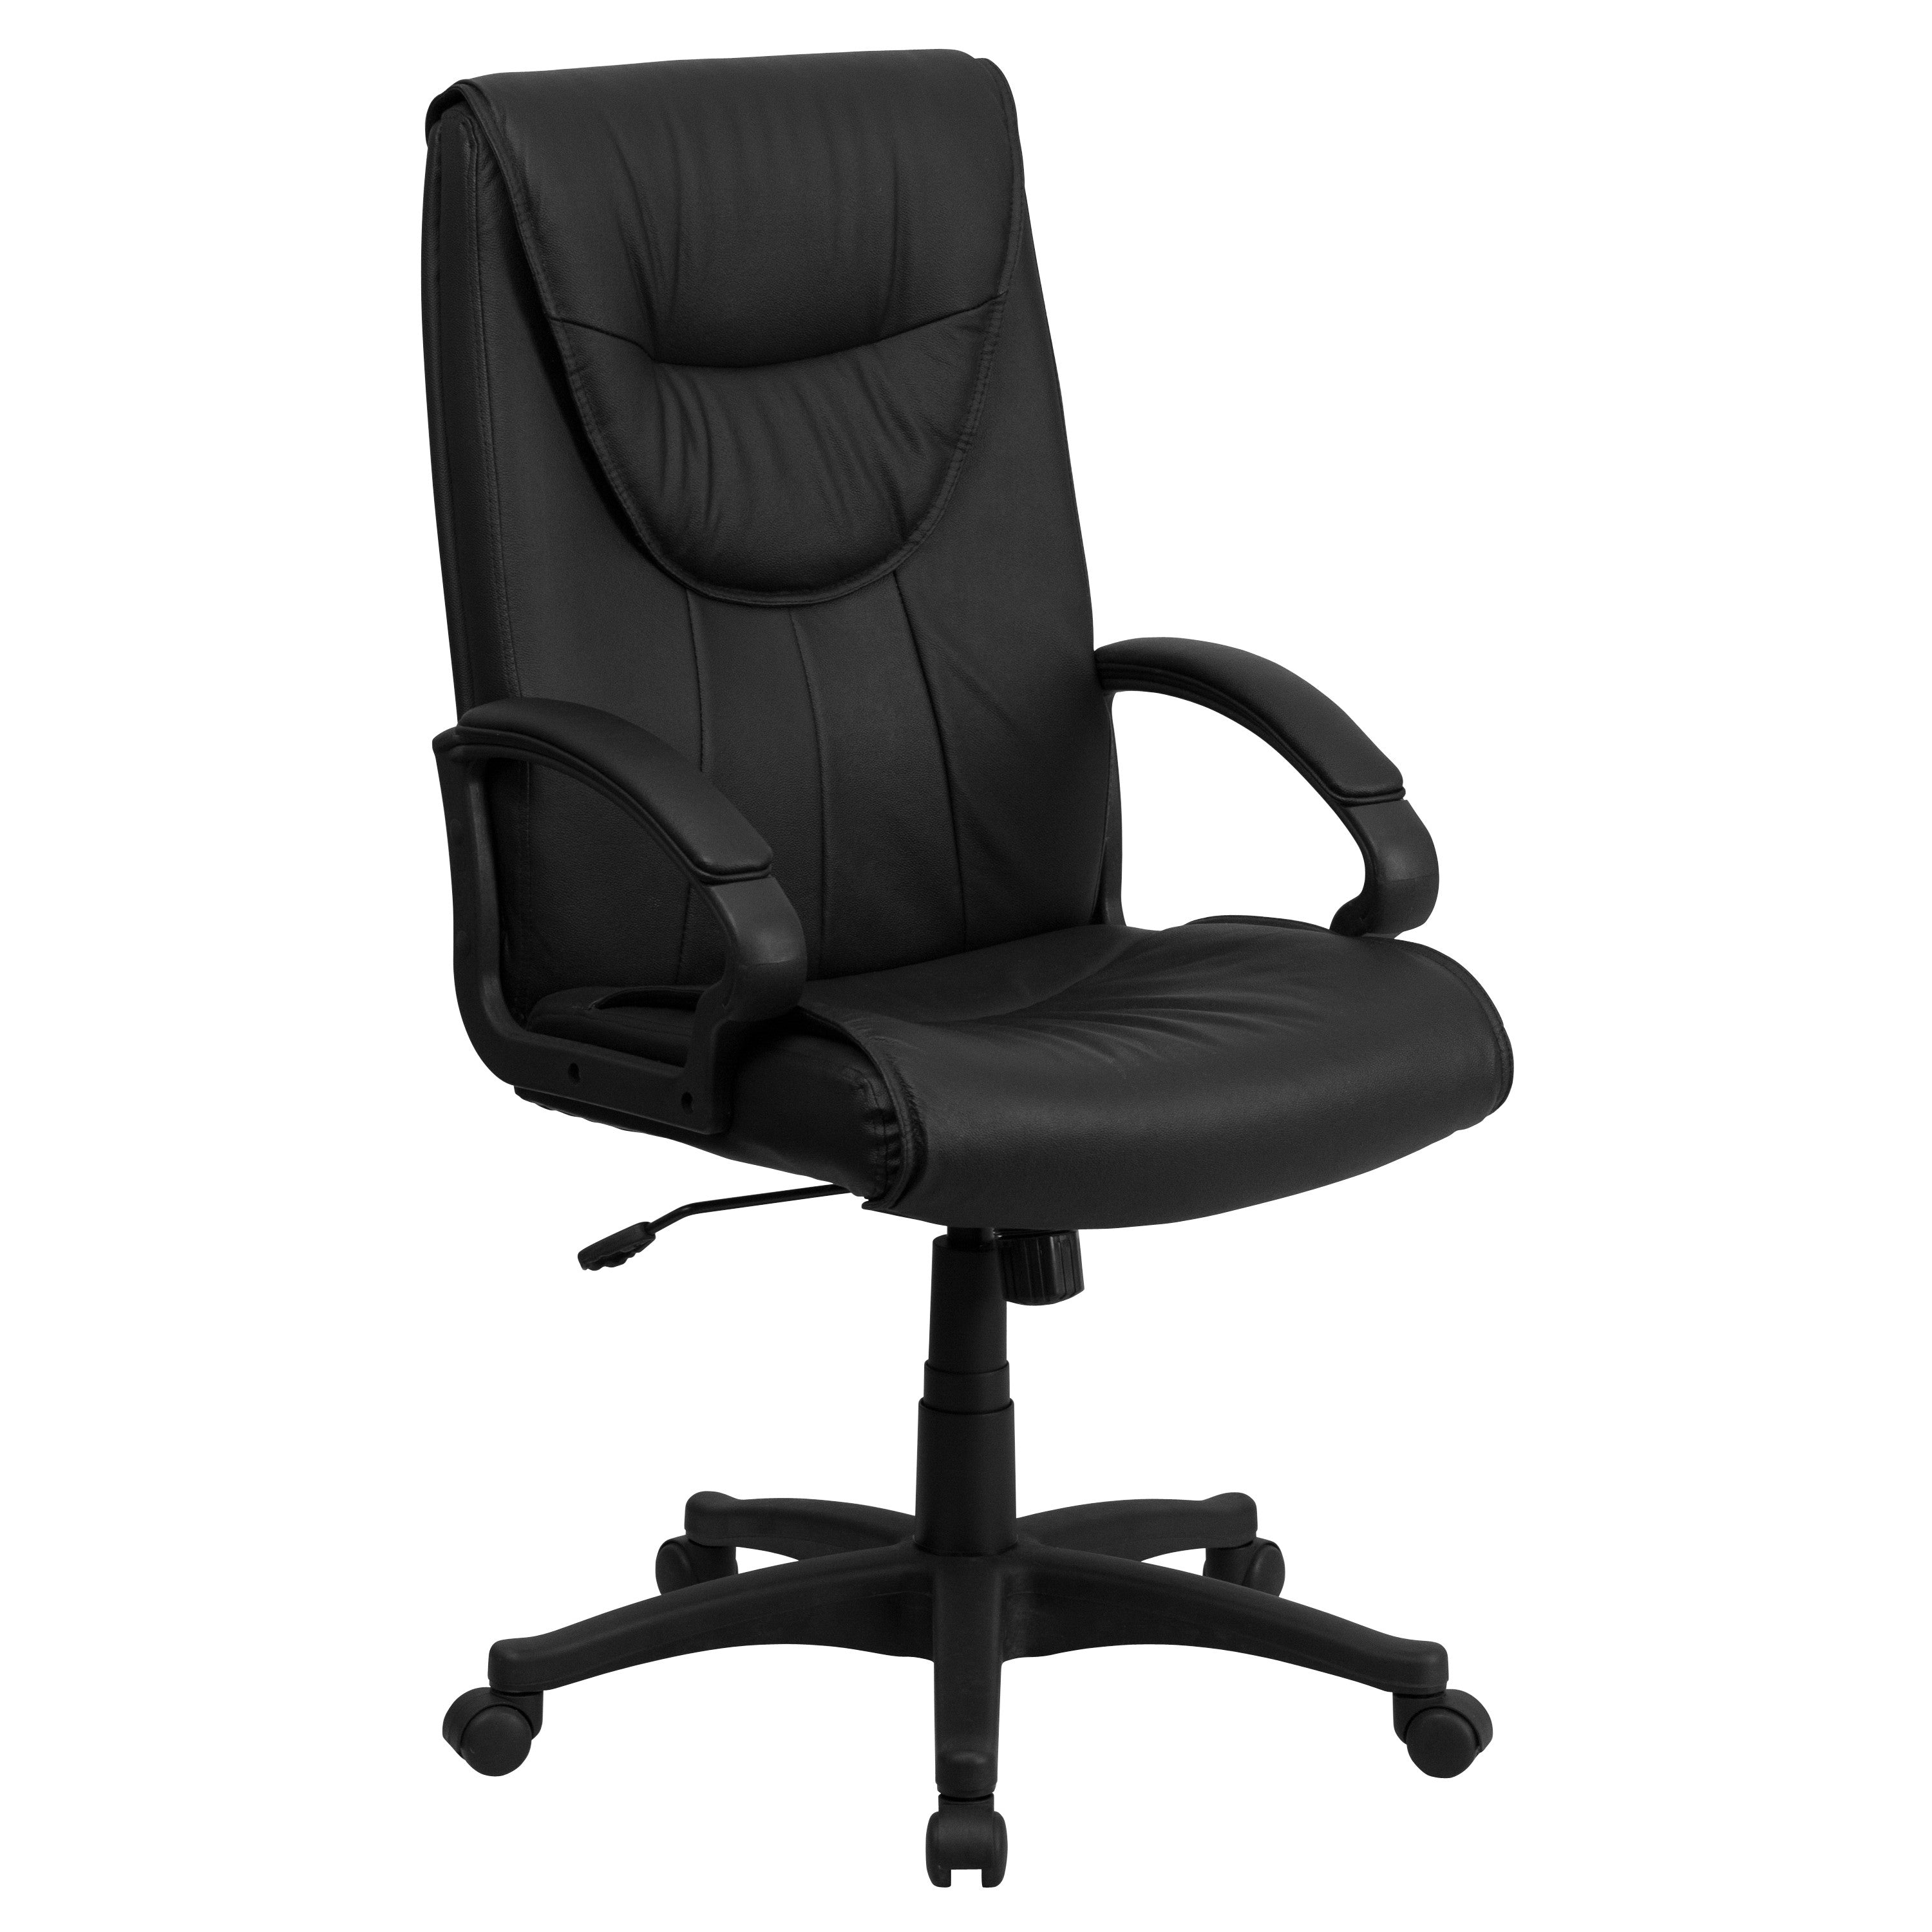 this leather upholstered office chair provides a appearance to complement your office or home